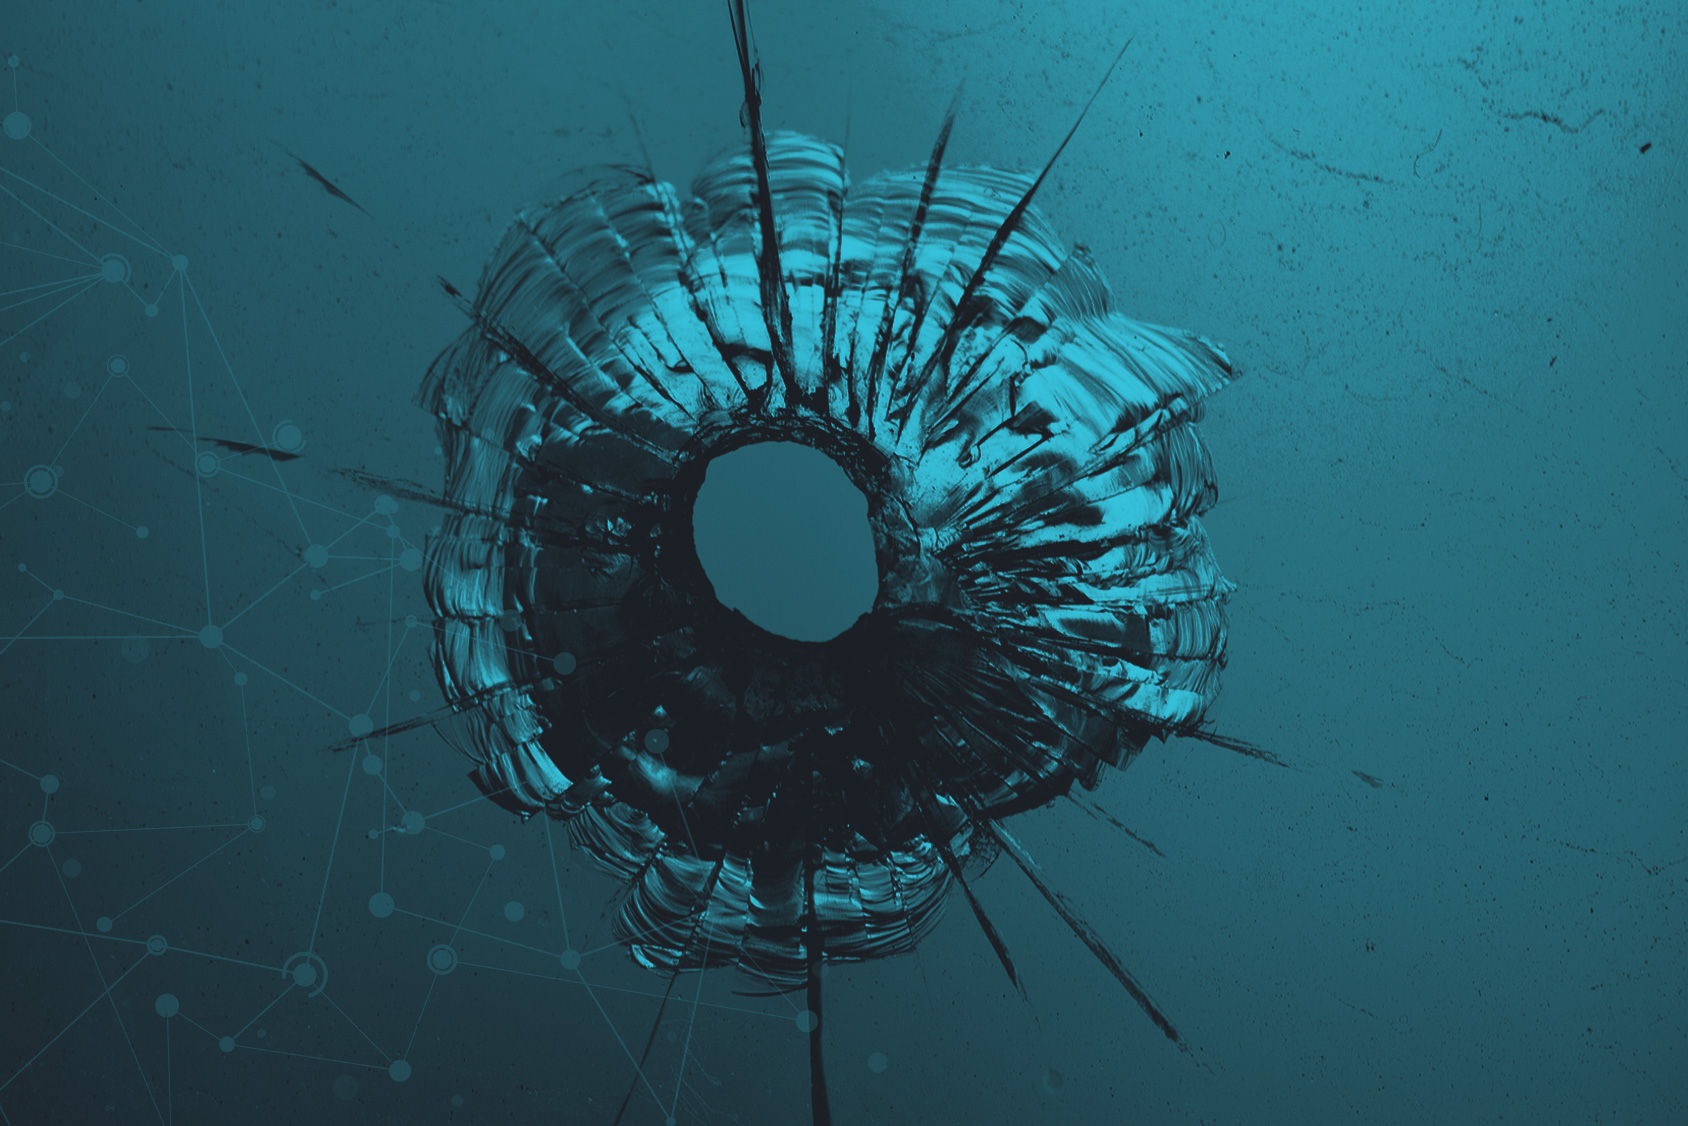 bullet-hole-glass.jpg